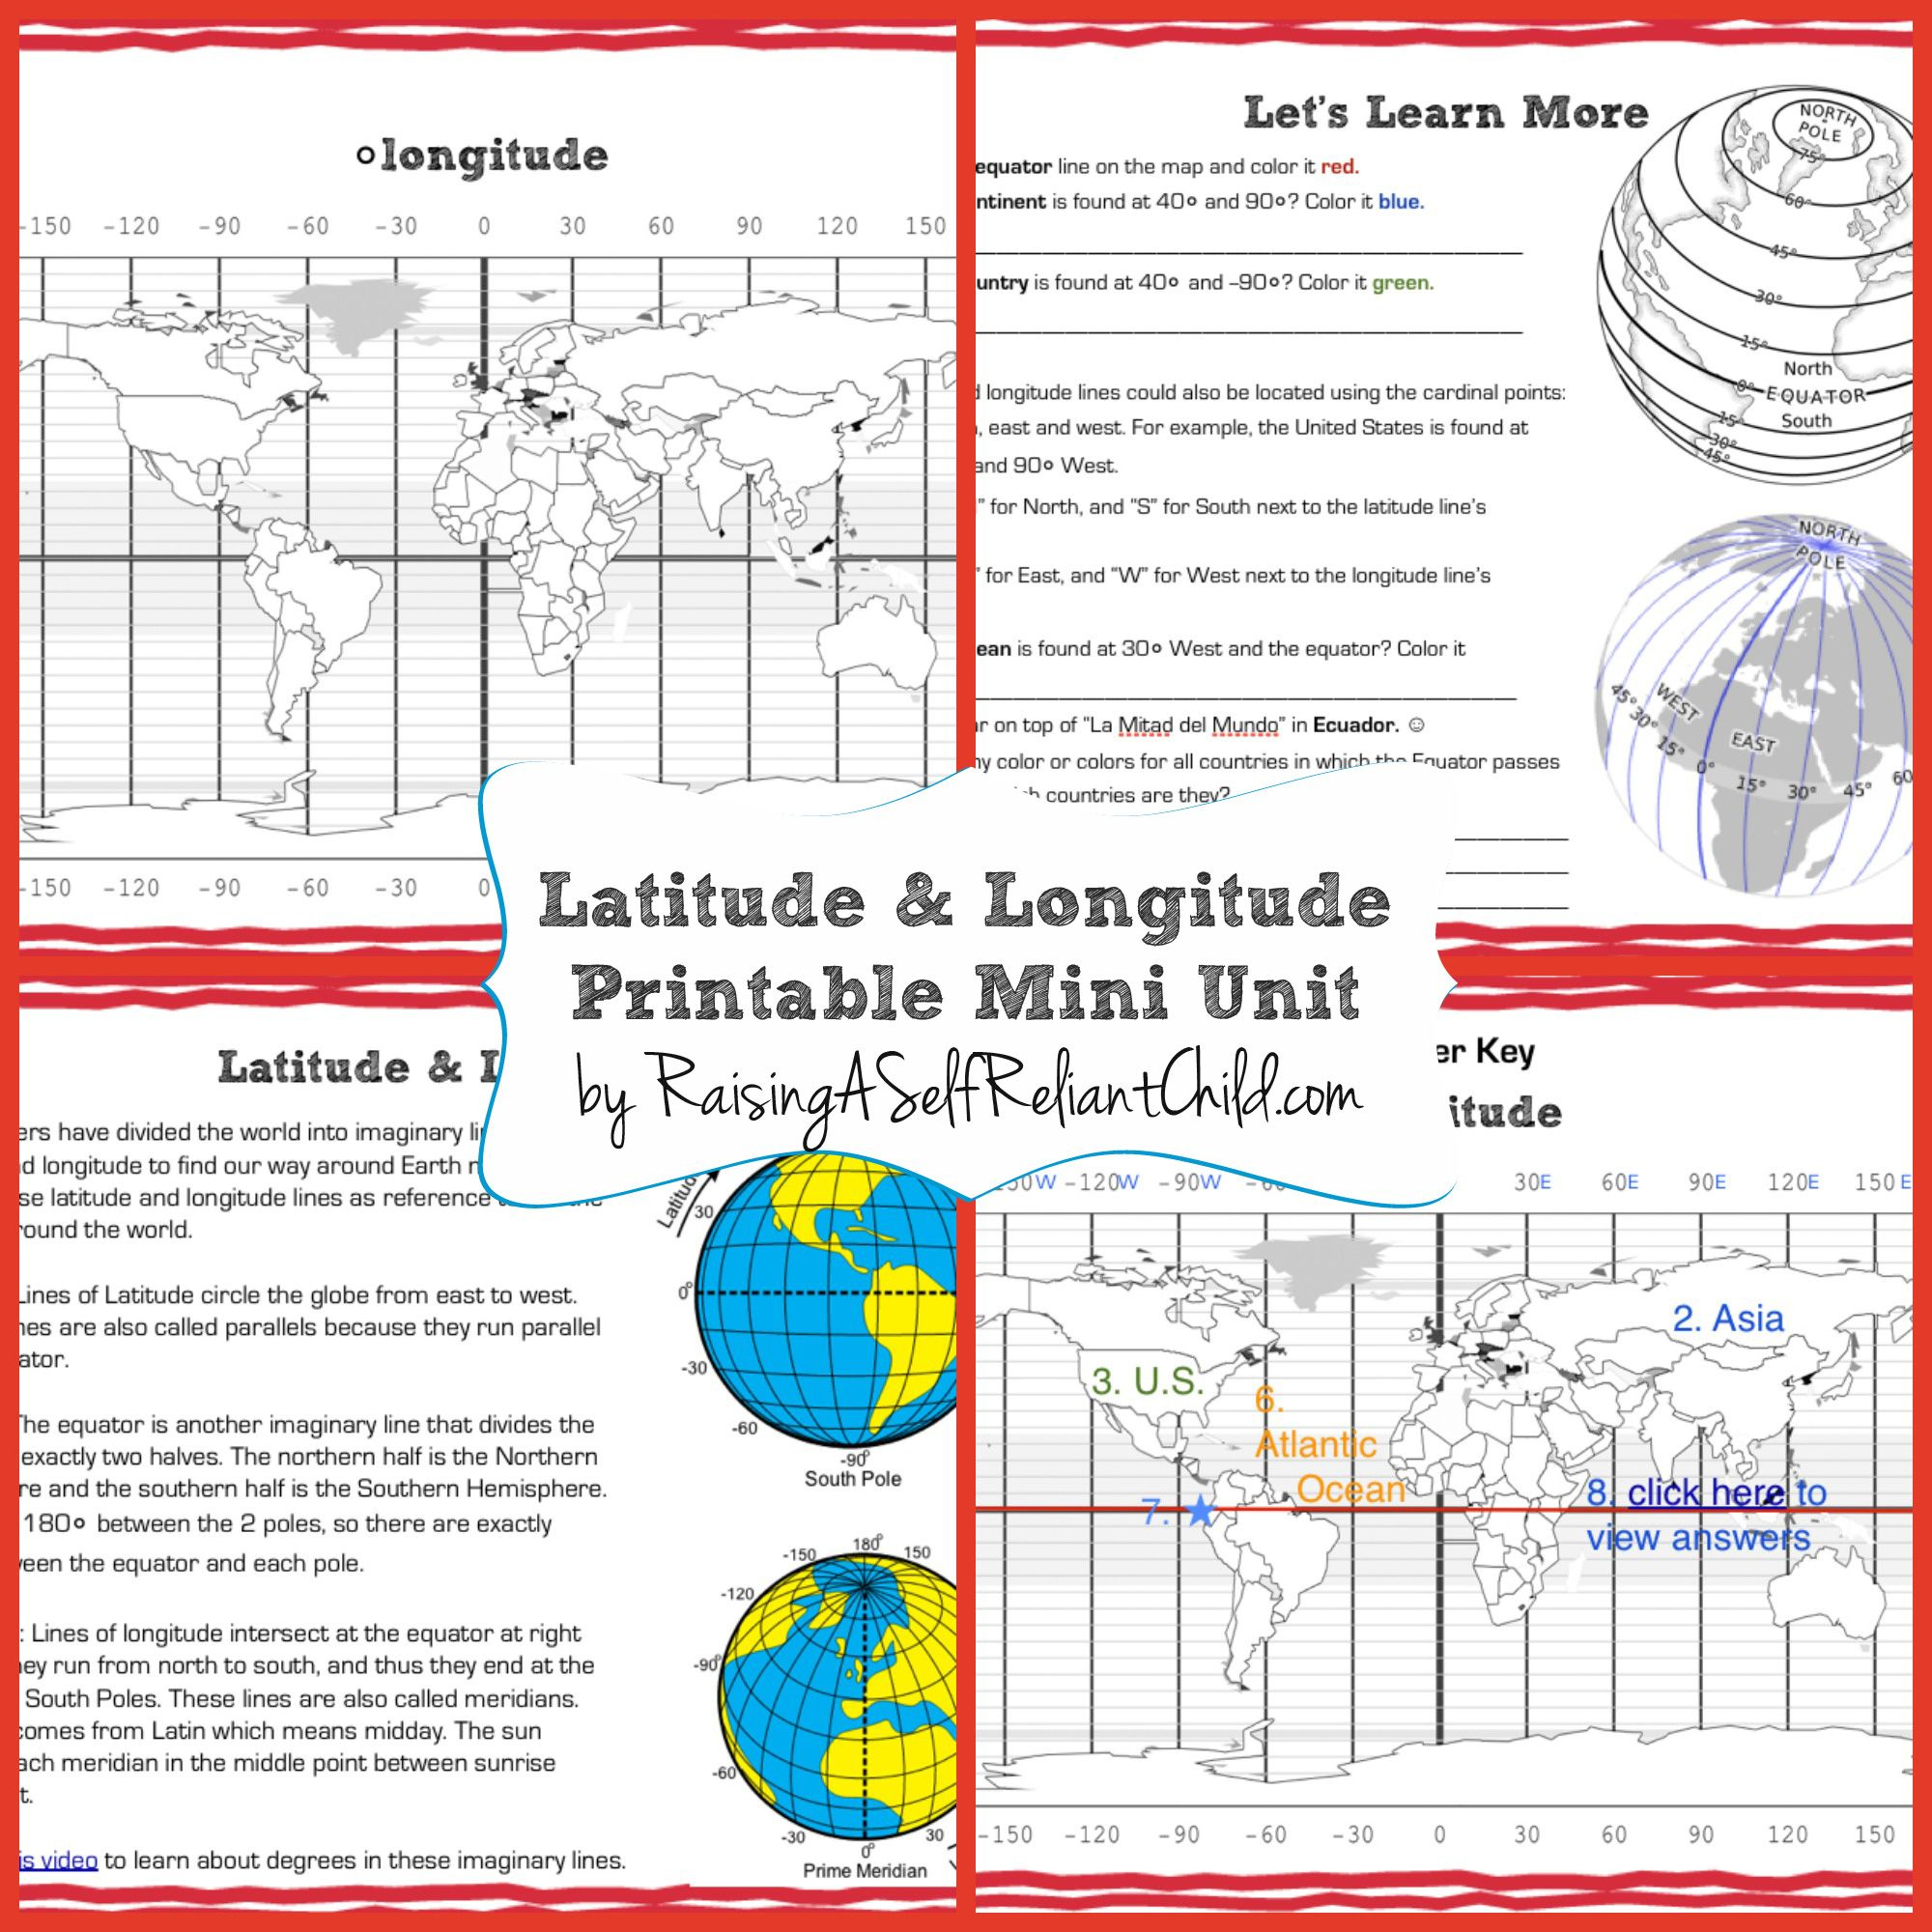 Free Printable Mini Unit Latitude And Longitude For Kids | The | Latitude And Longitude Worksheets Free Printable